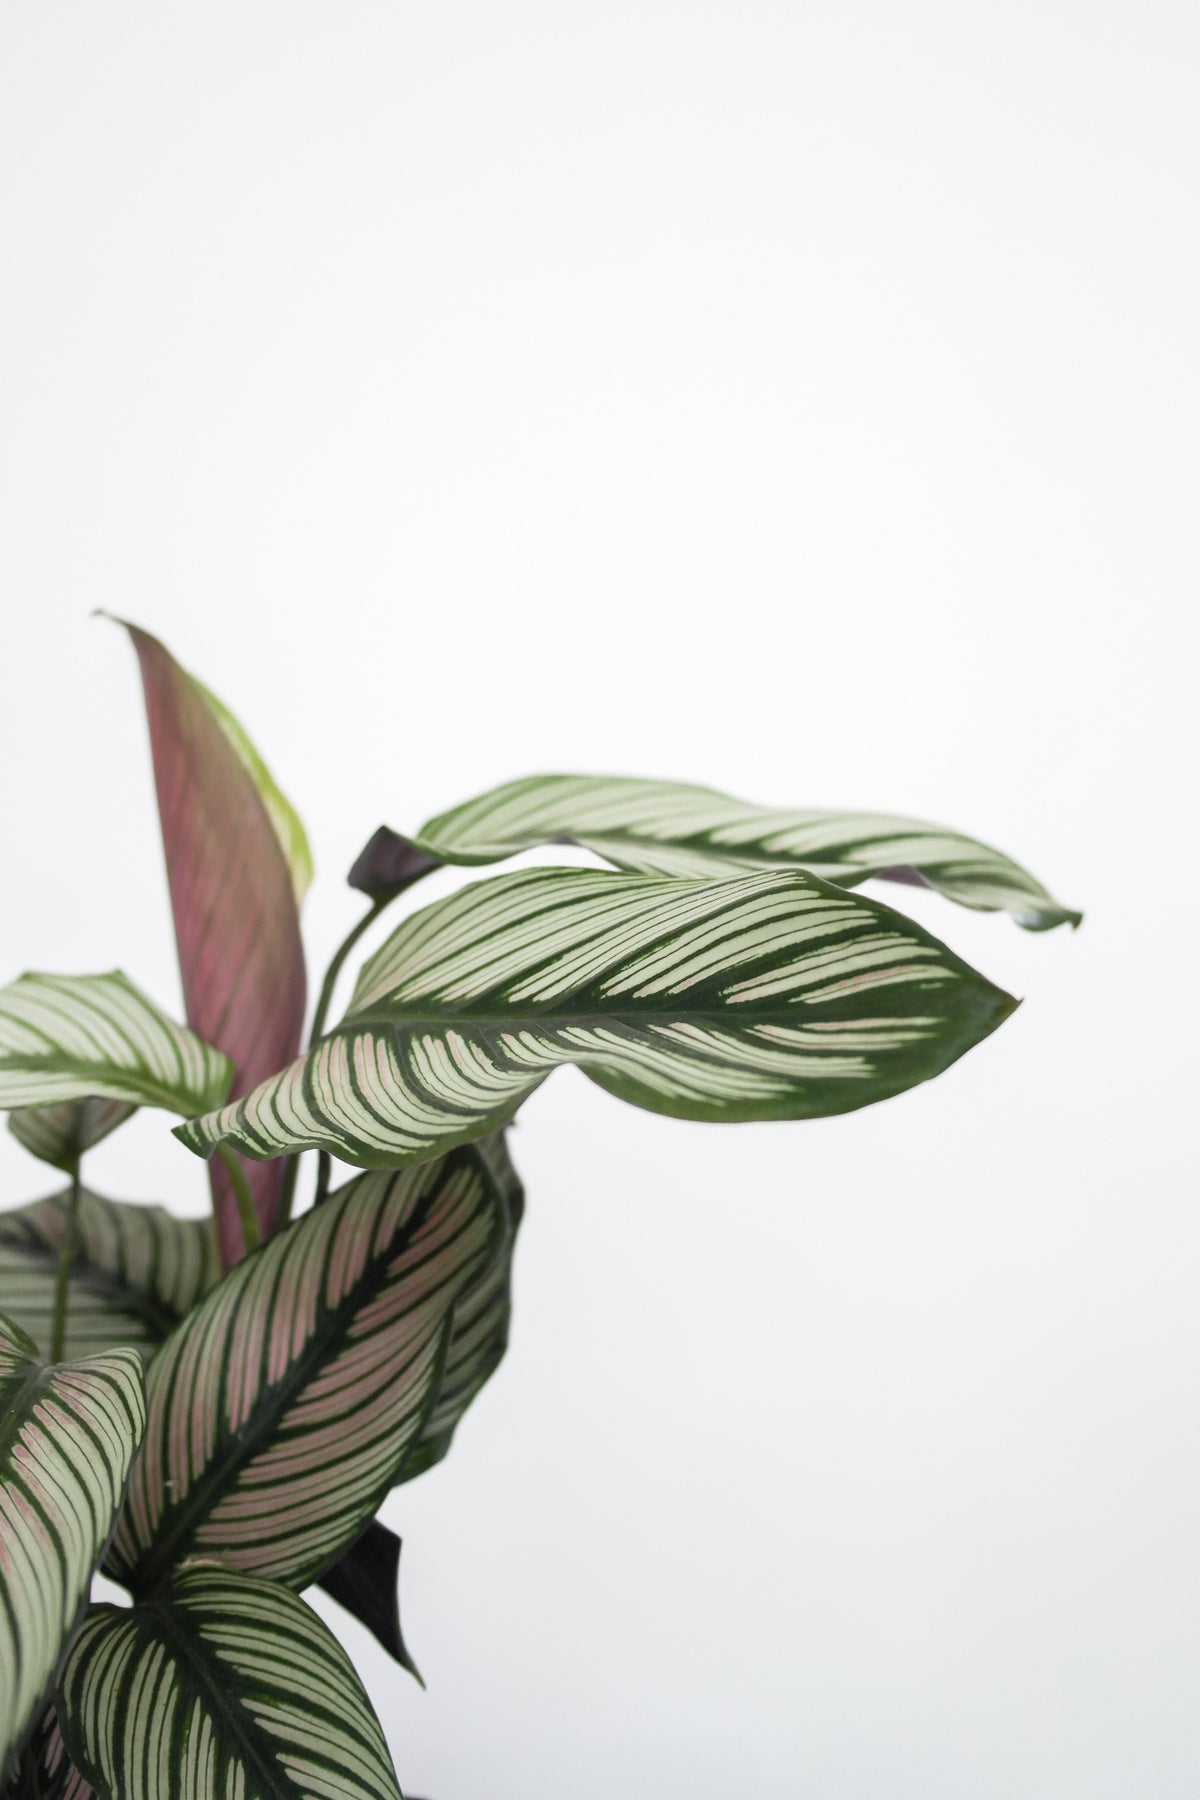 Calathea 'White Star'